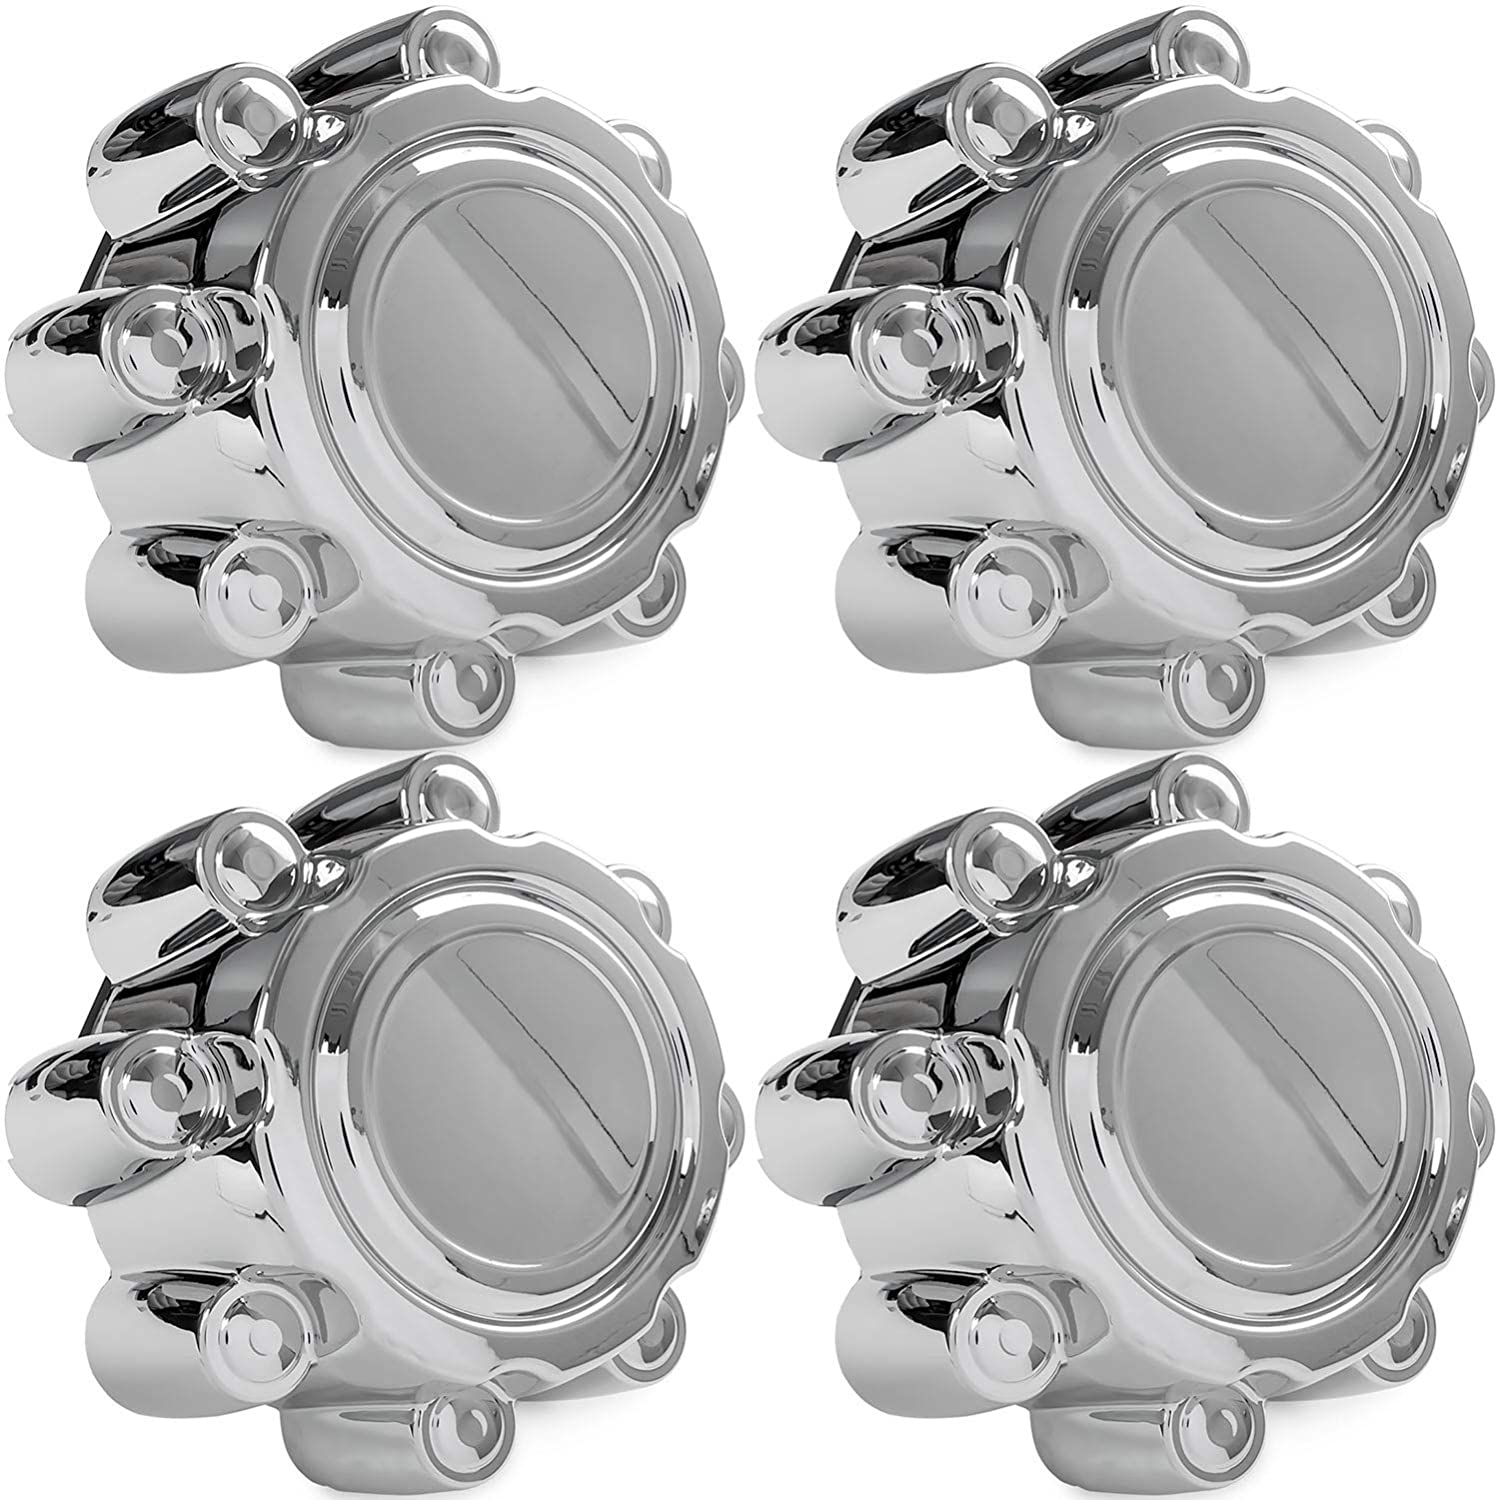 4x Chrome Center Caps Wheel Lug Nut Hub Cap Covers for 1999-2005 Ford F350 SuperDuty (SRW) KapscoMoto